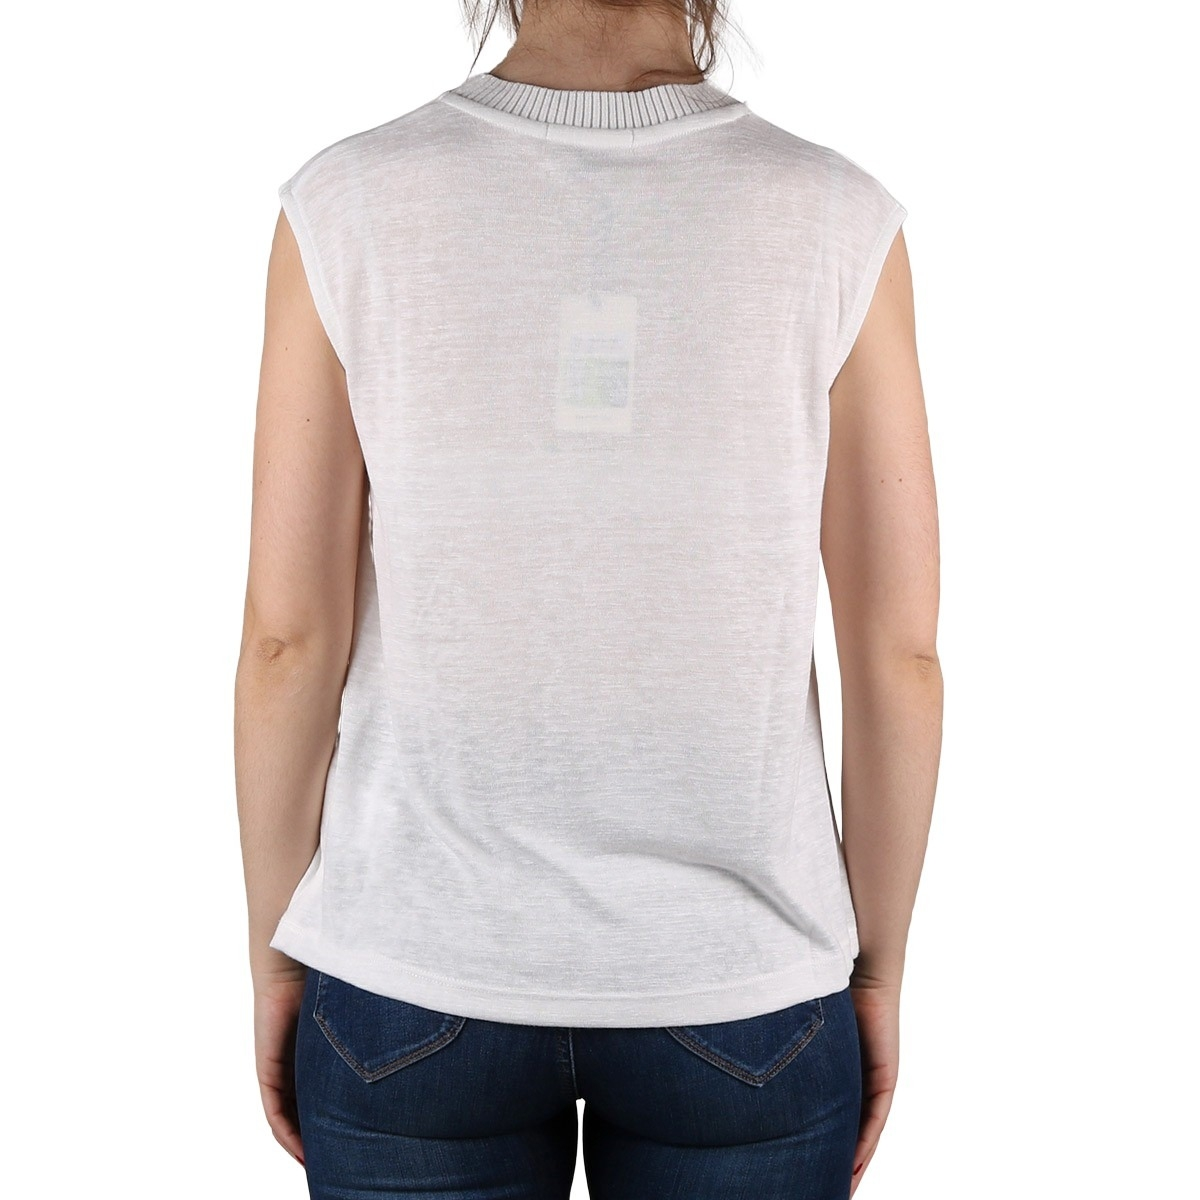 Pepe Jeans Camiseta Carly Optic White Blanco Mujer